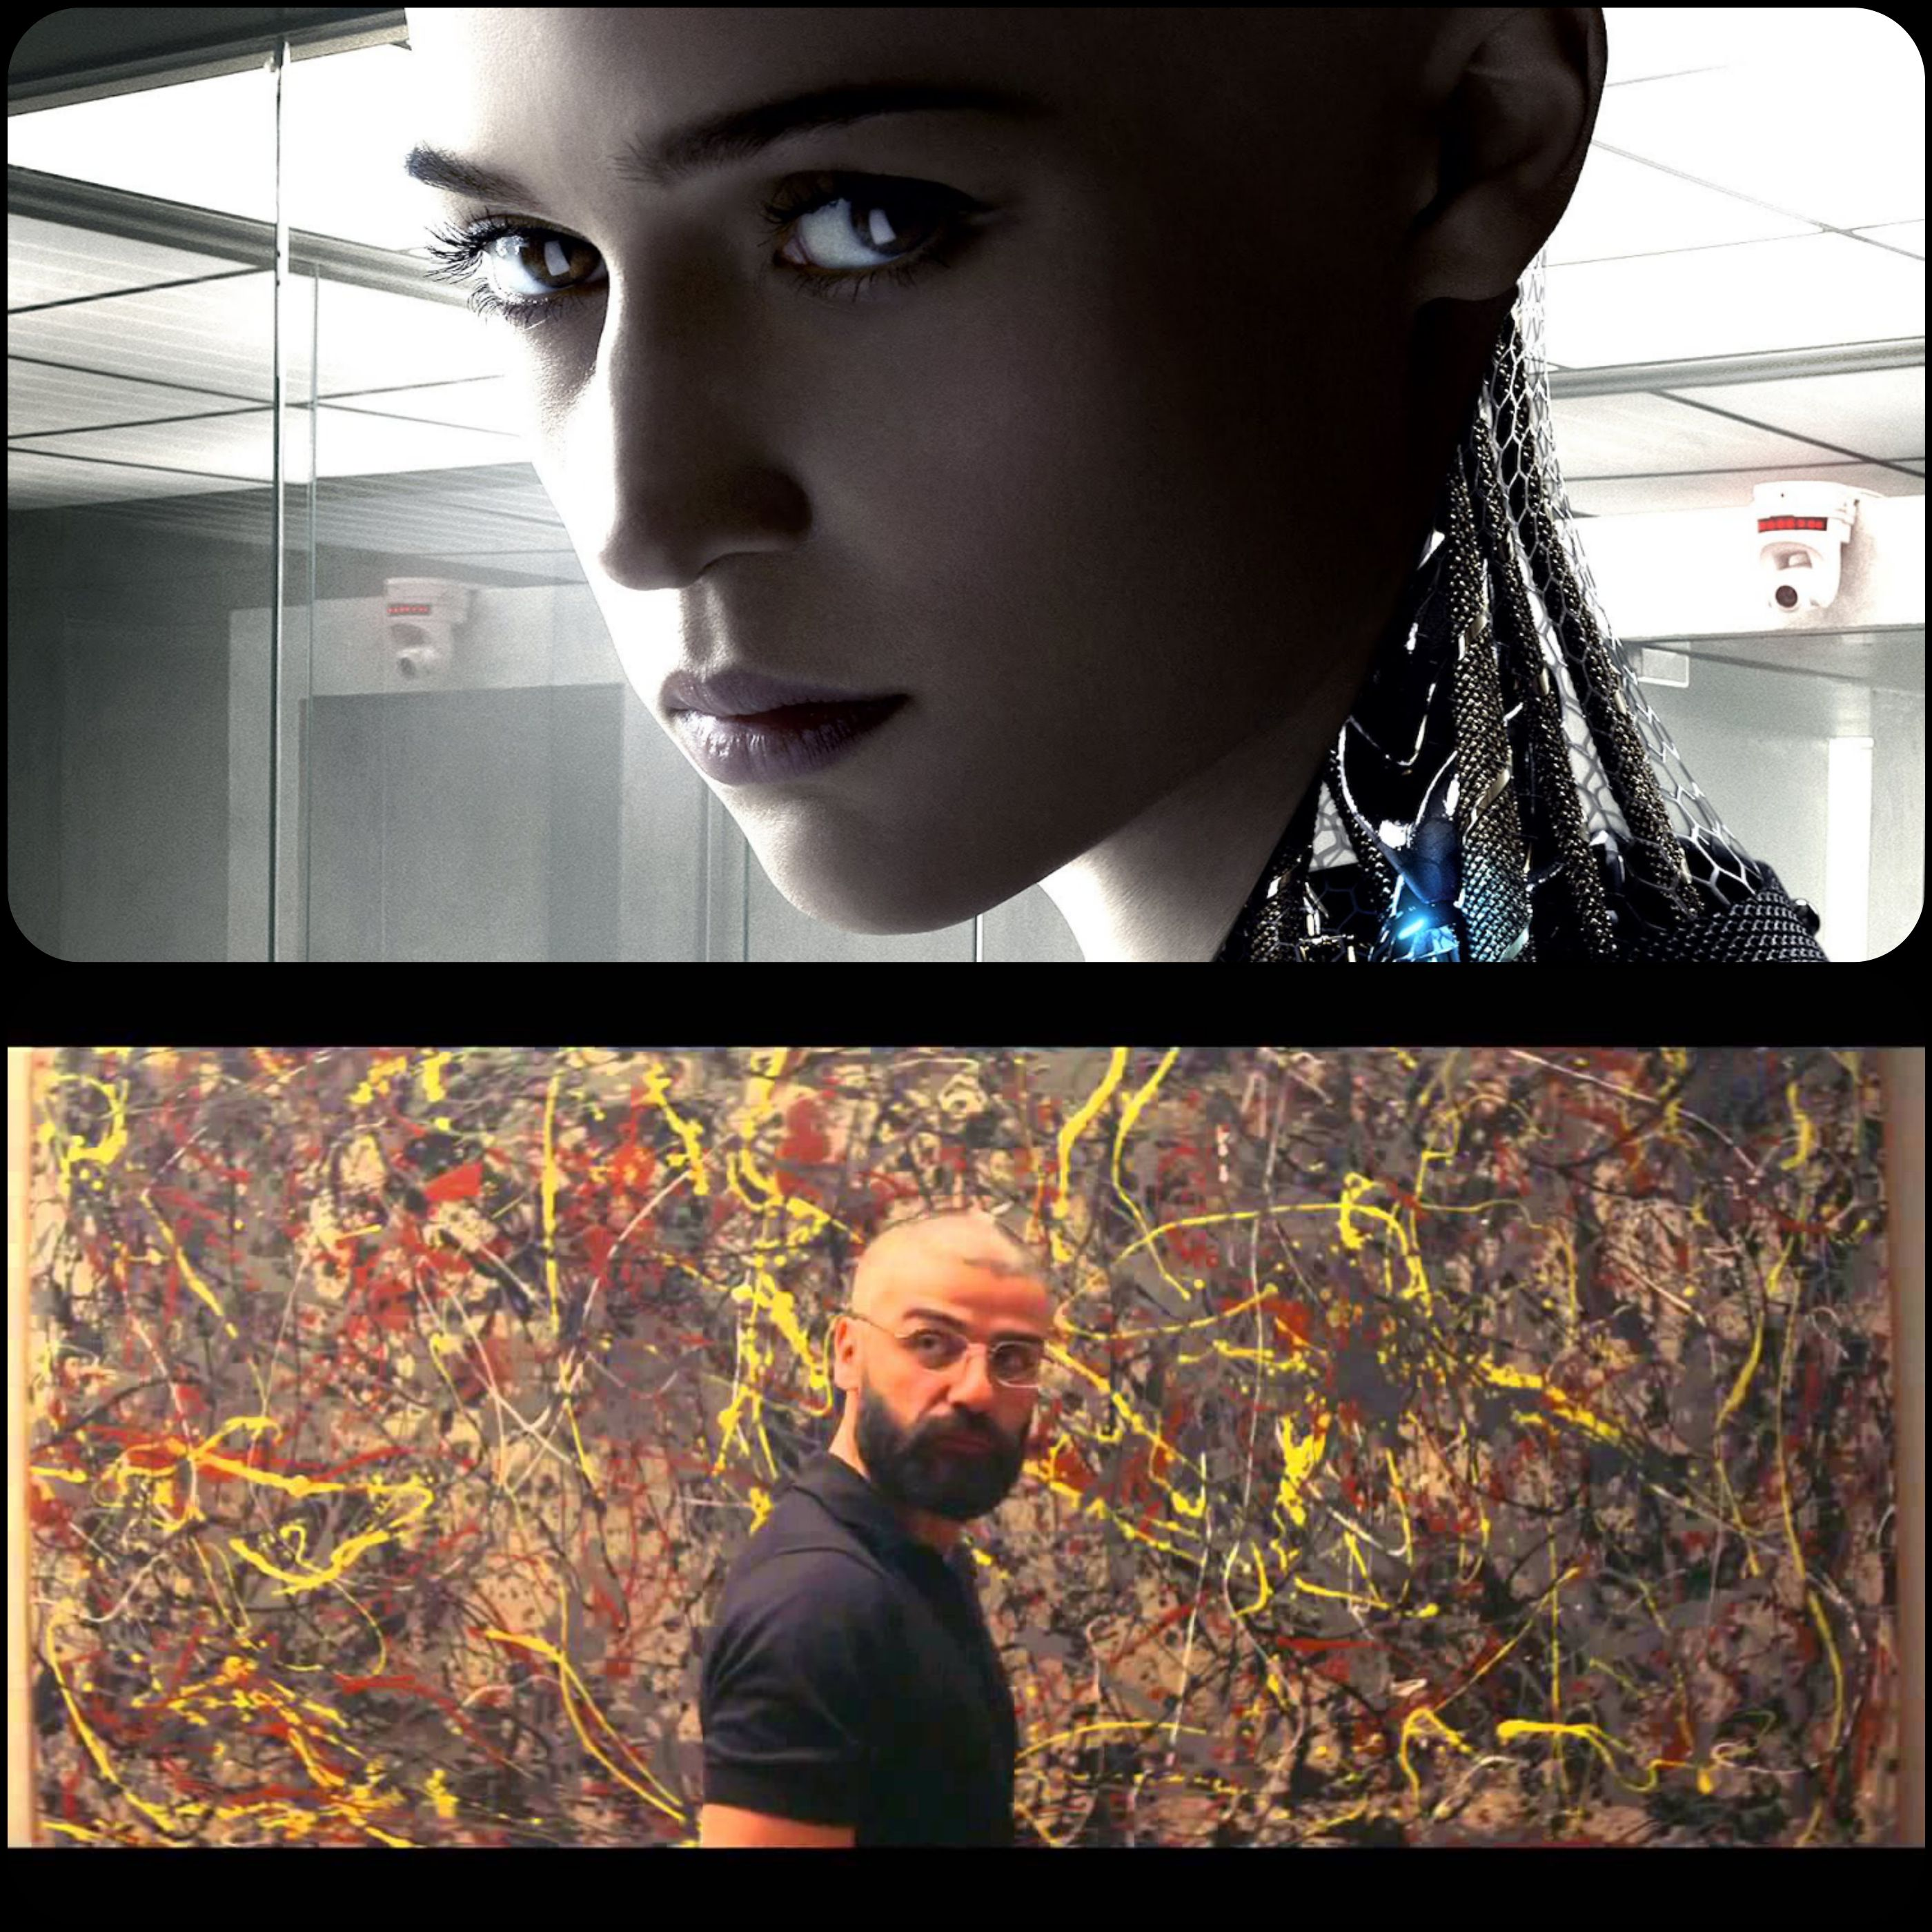 """""""One day the AIs are going to look back on us the same way we look at fossil skeletons on the plains of Africa. An upright ape, living in dust, with crude language and tools, all set for extinction."""" ex machina"""